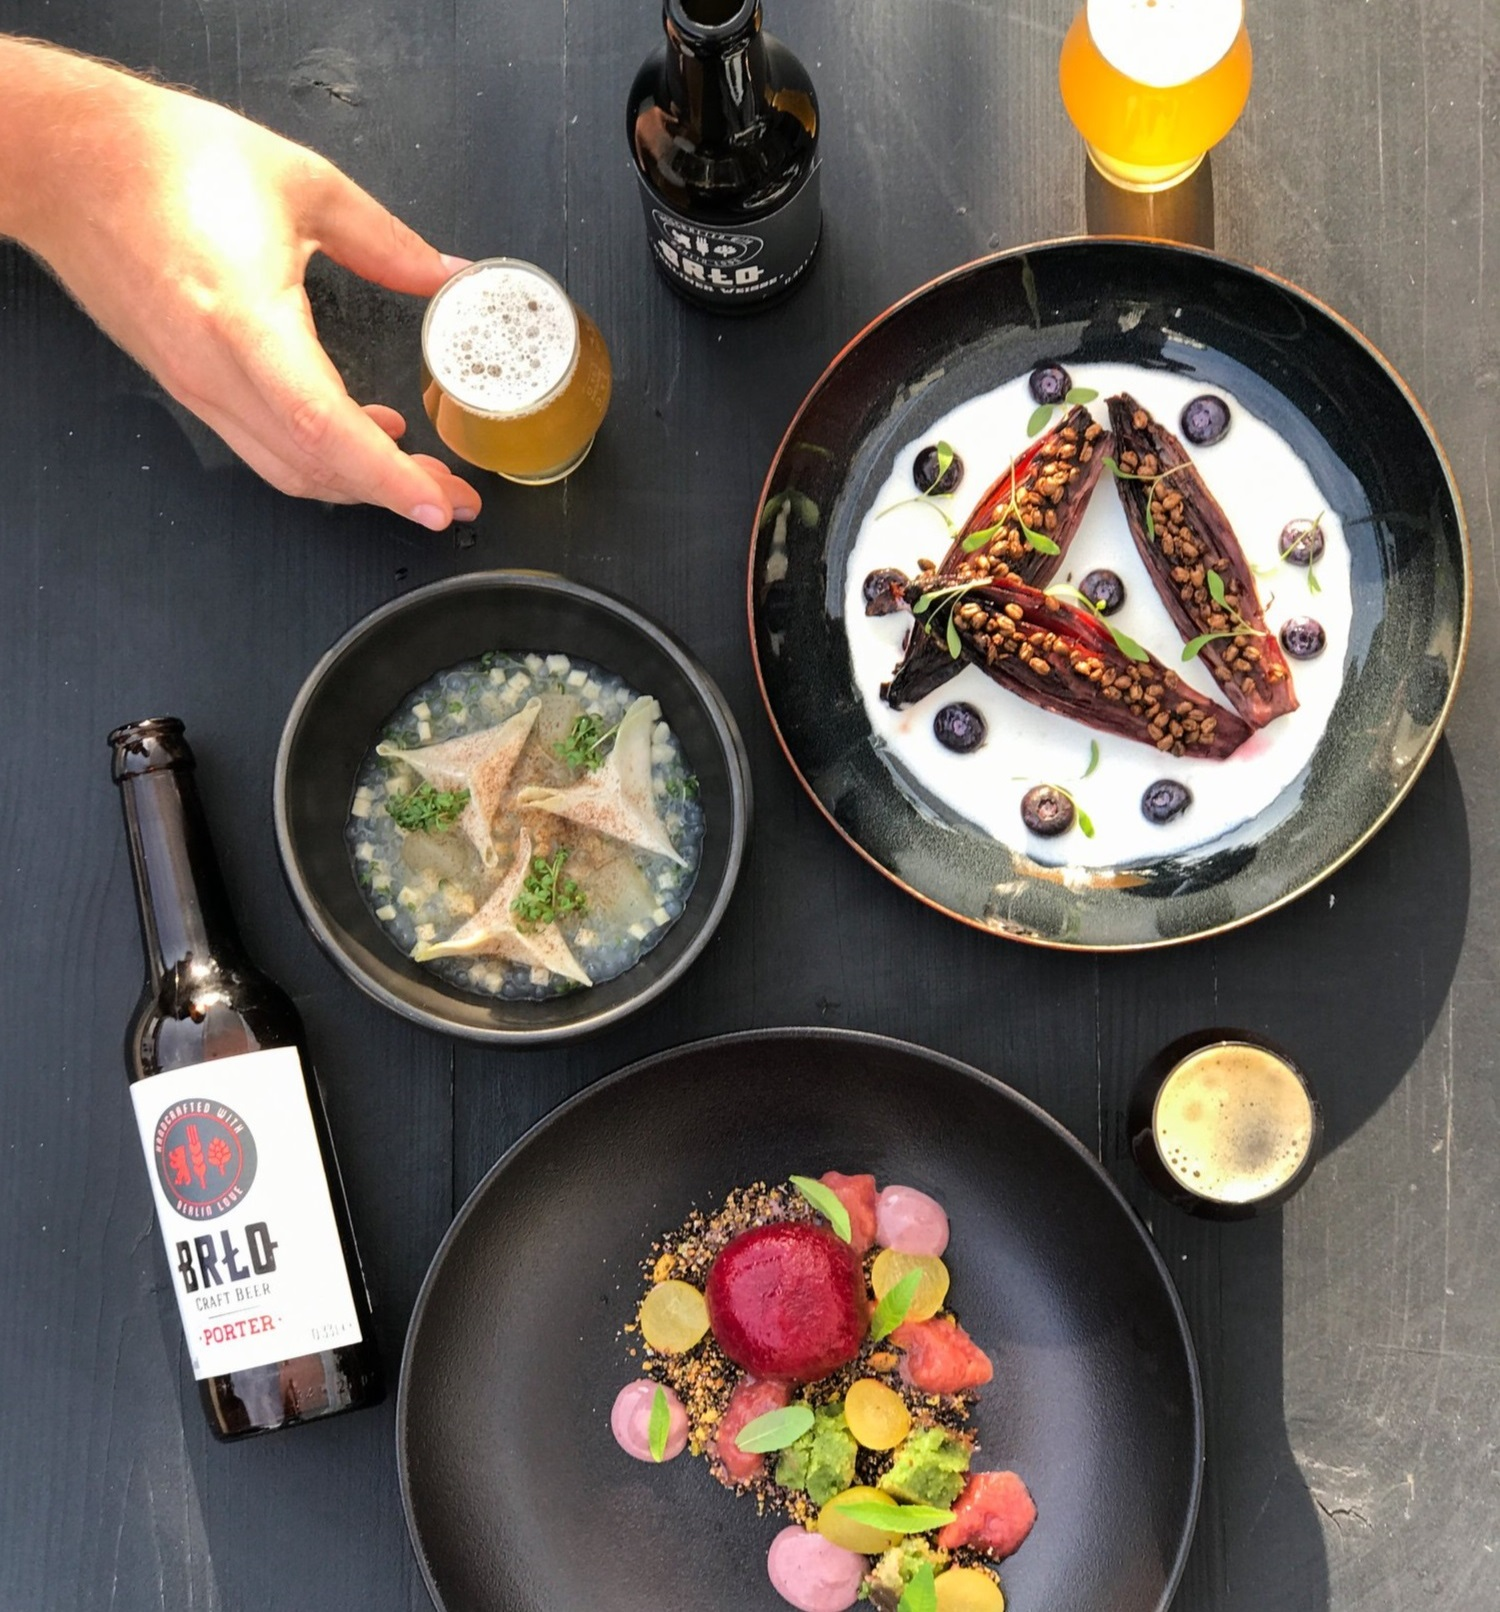 Three different dishes arranged on black stylish plates, BRLO craft beer next to them, a Porter and a pale ale